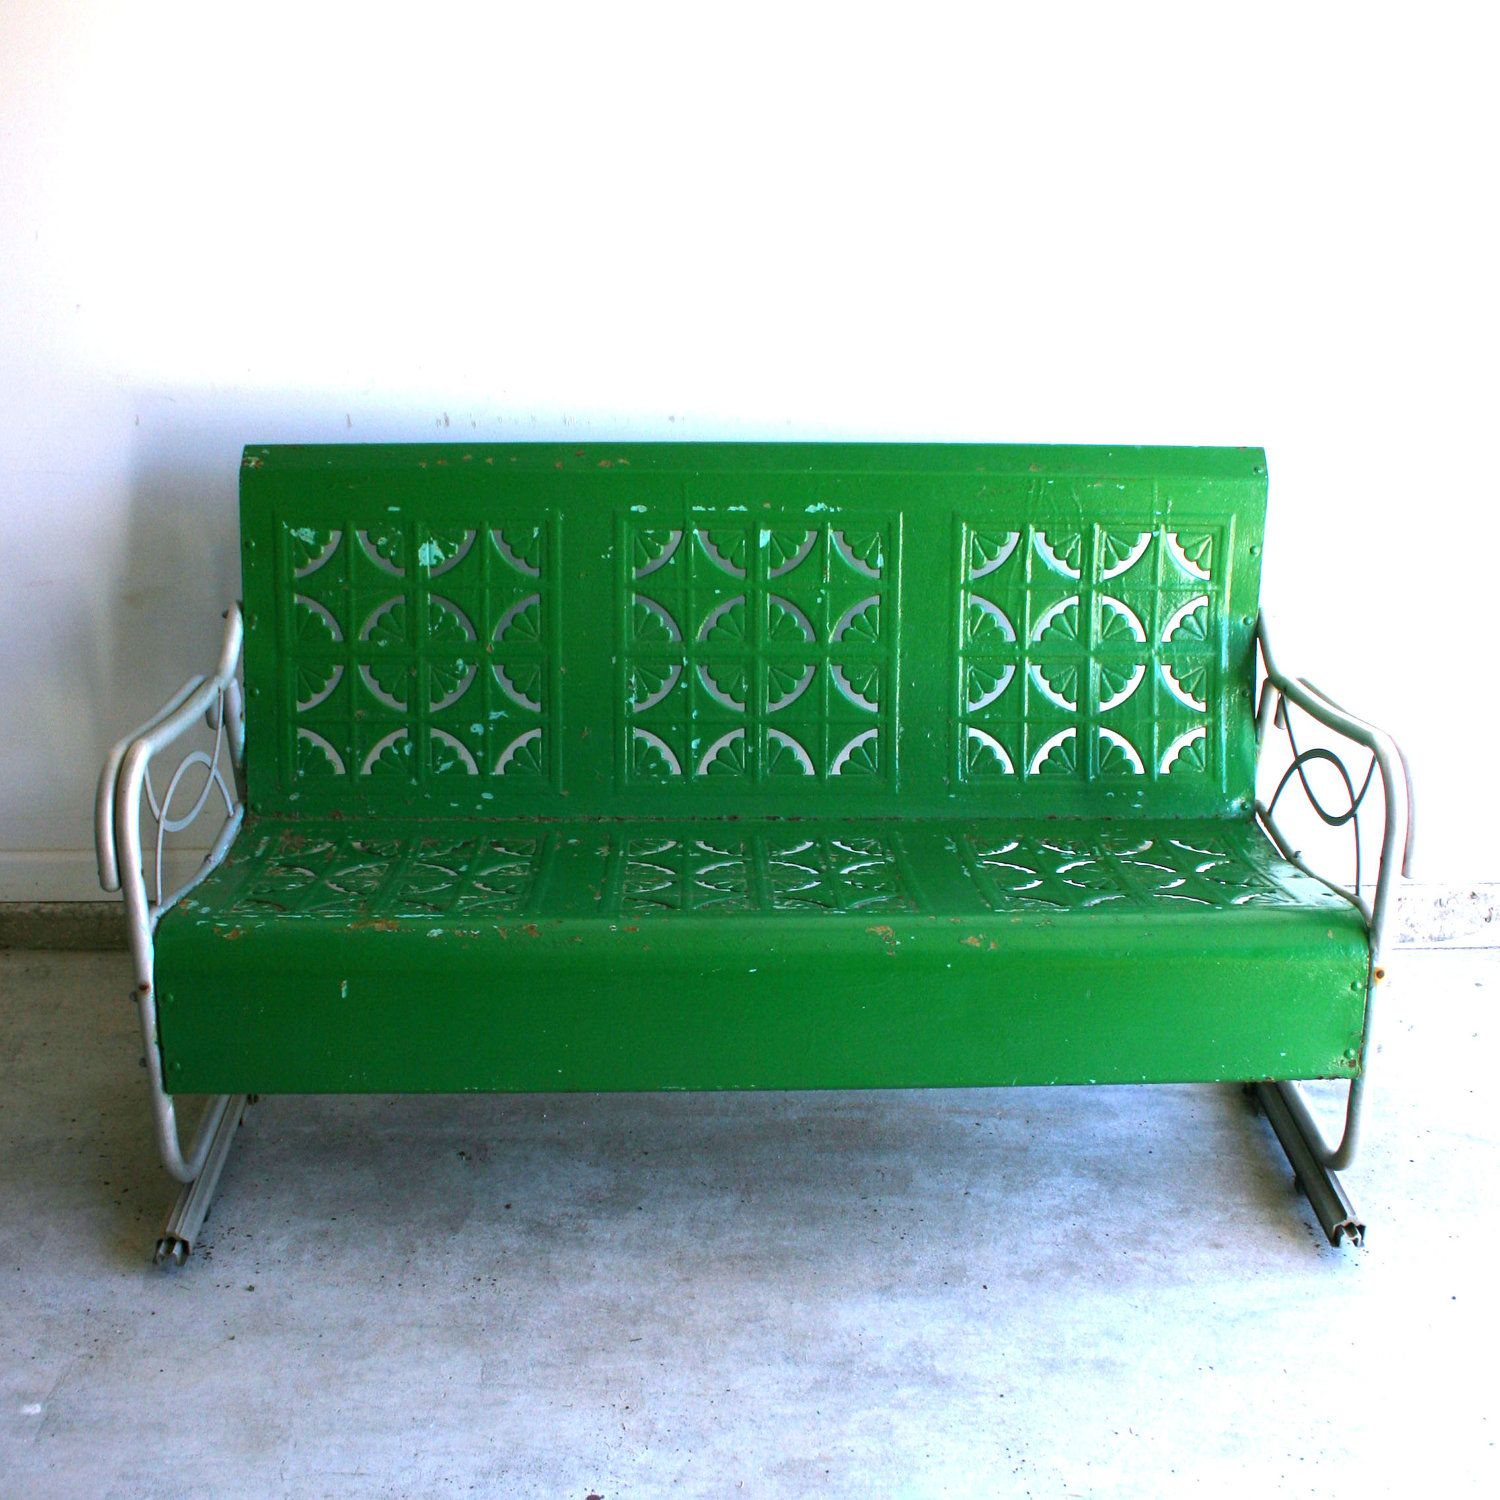 Spring Green Vintage Glider Metal Bench By RhapsodyAttic On Etsy, I Want  This On My